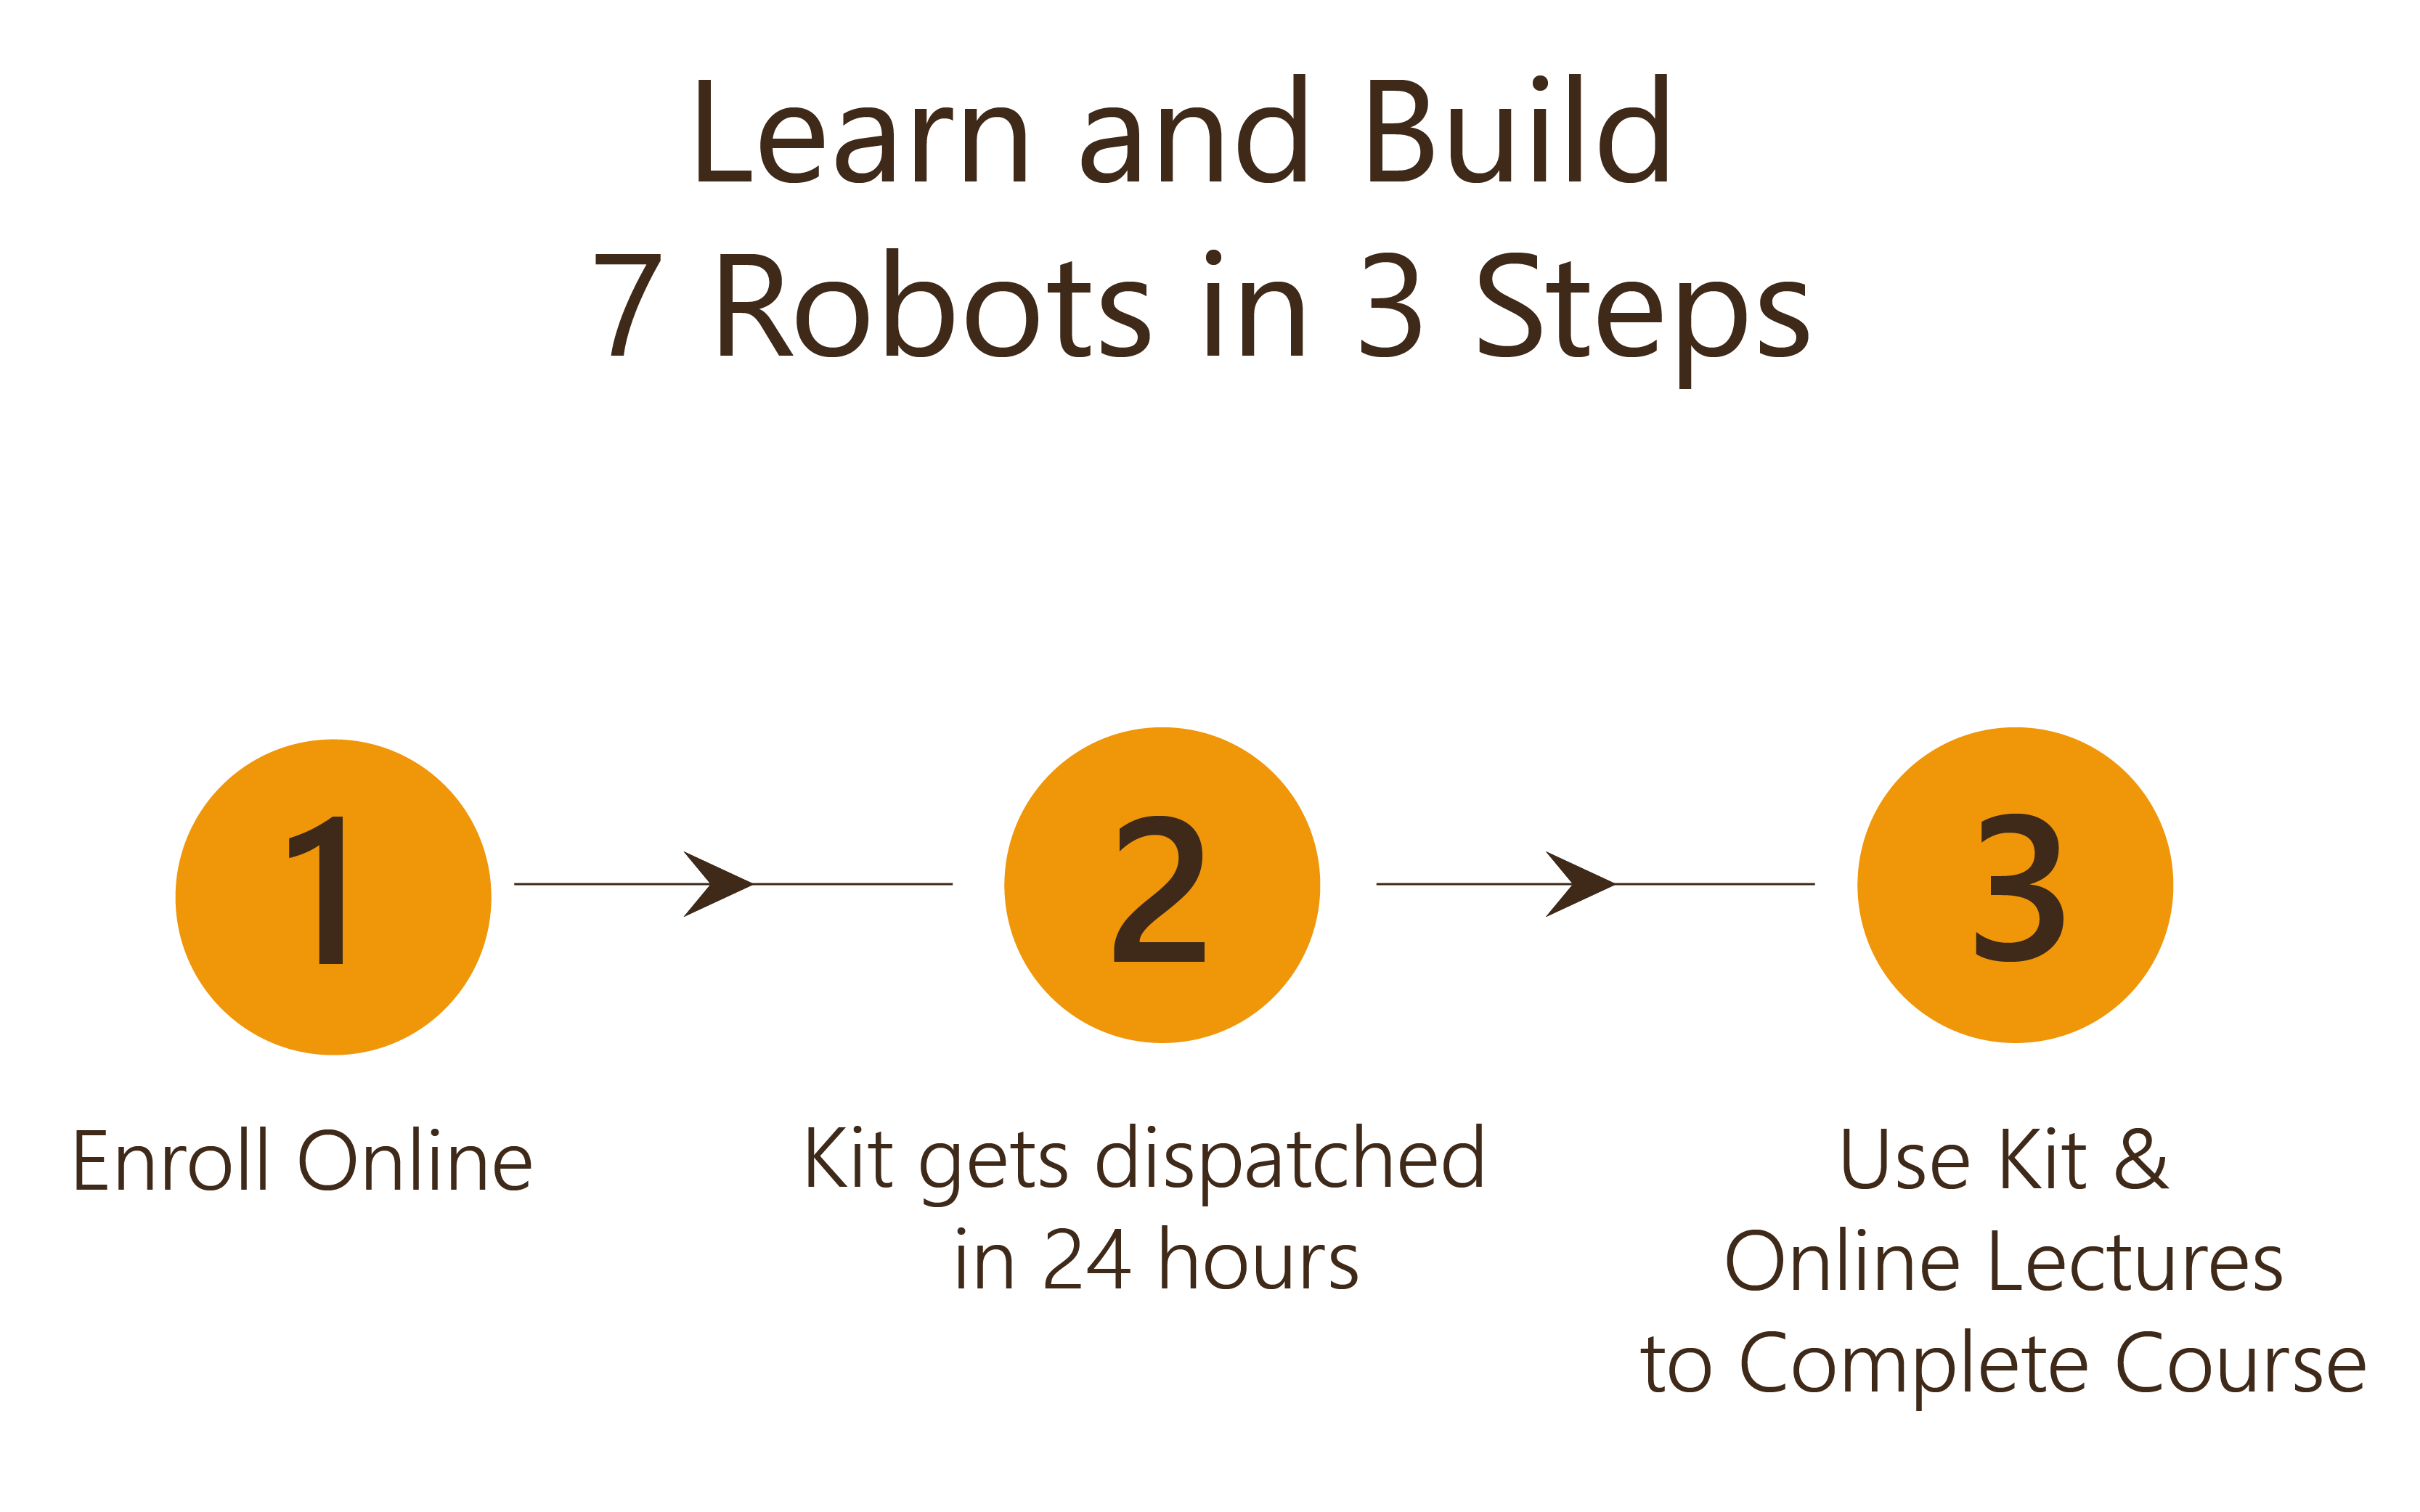 Learn and Build 7 Robots in 3 Steps